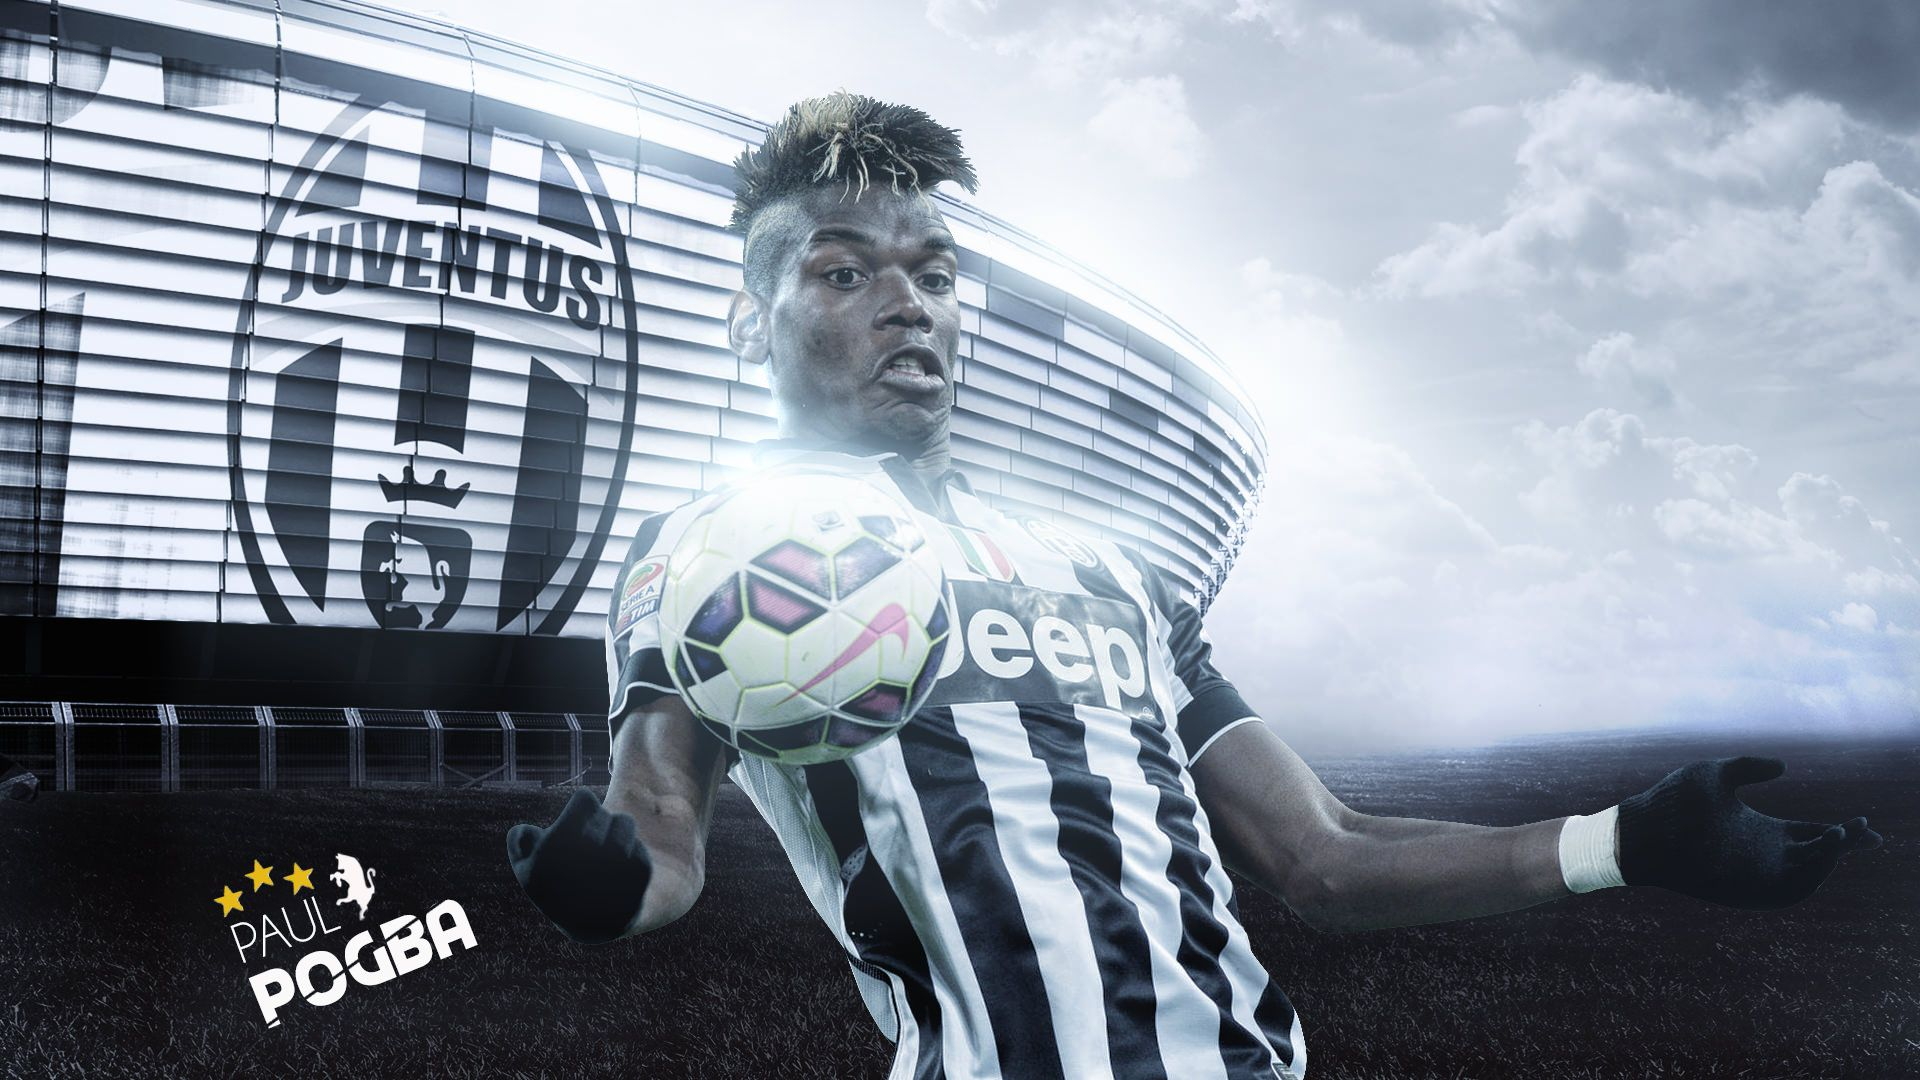 Paul Pogba Juventus 2015/2016 Wallpaper  Football